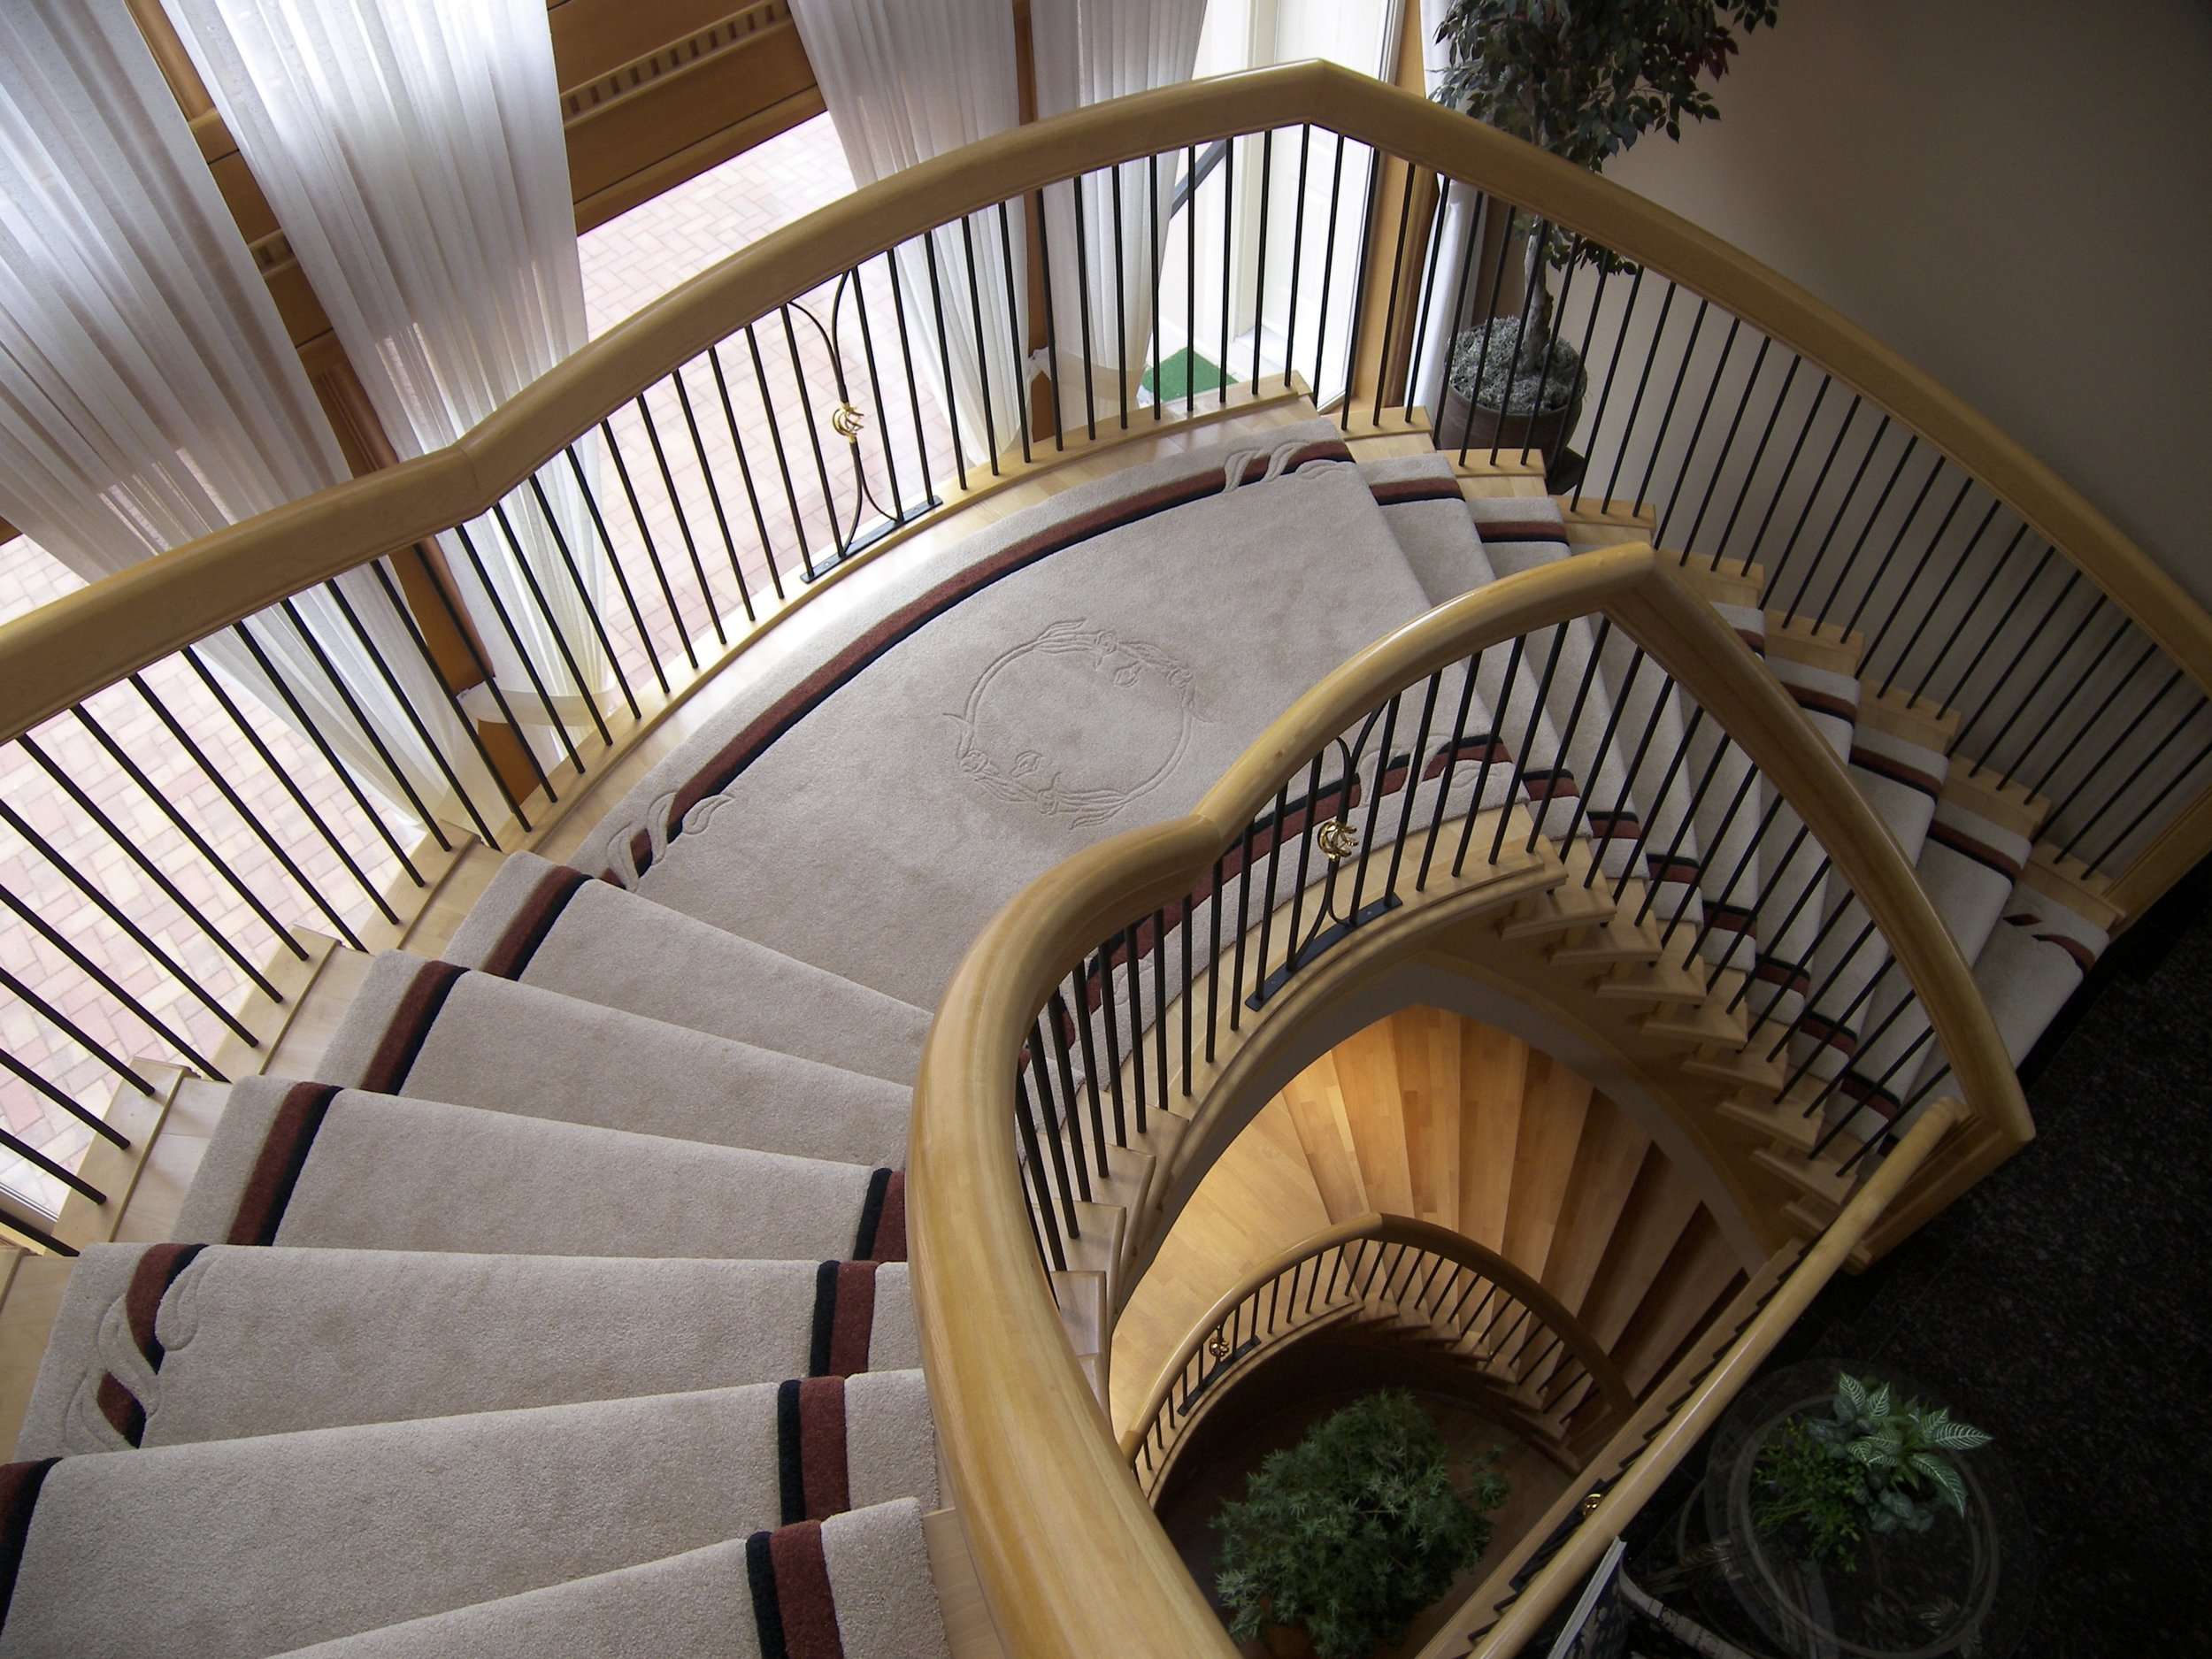 Installation - Installation services by our experienced installers are available for commercial matting and carpets in recessed wells, on stairs, and wall to wall custom carpets.